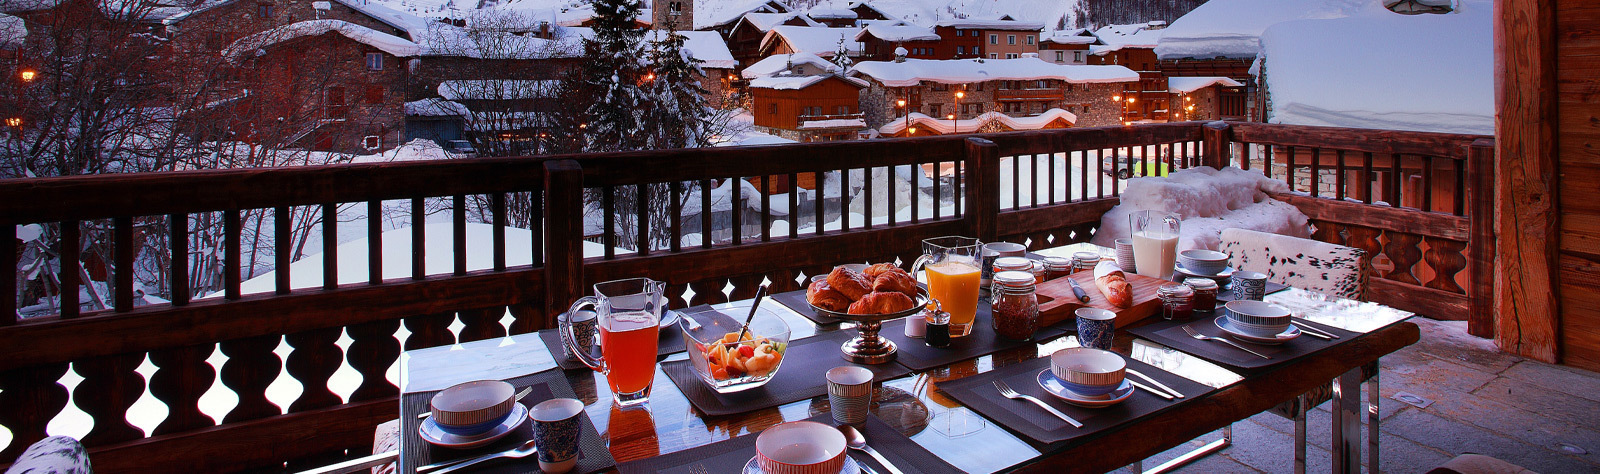 Courchevel accommodations